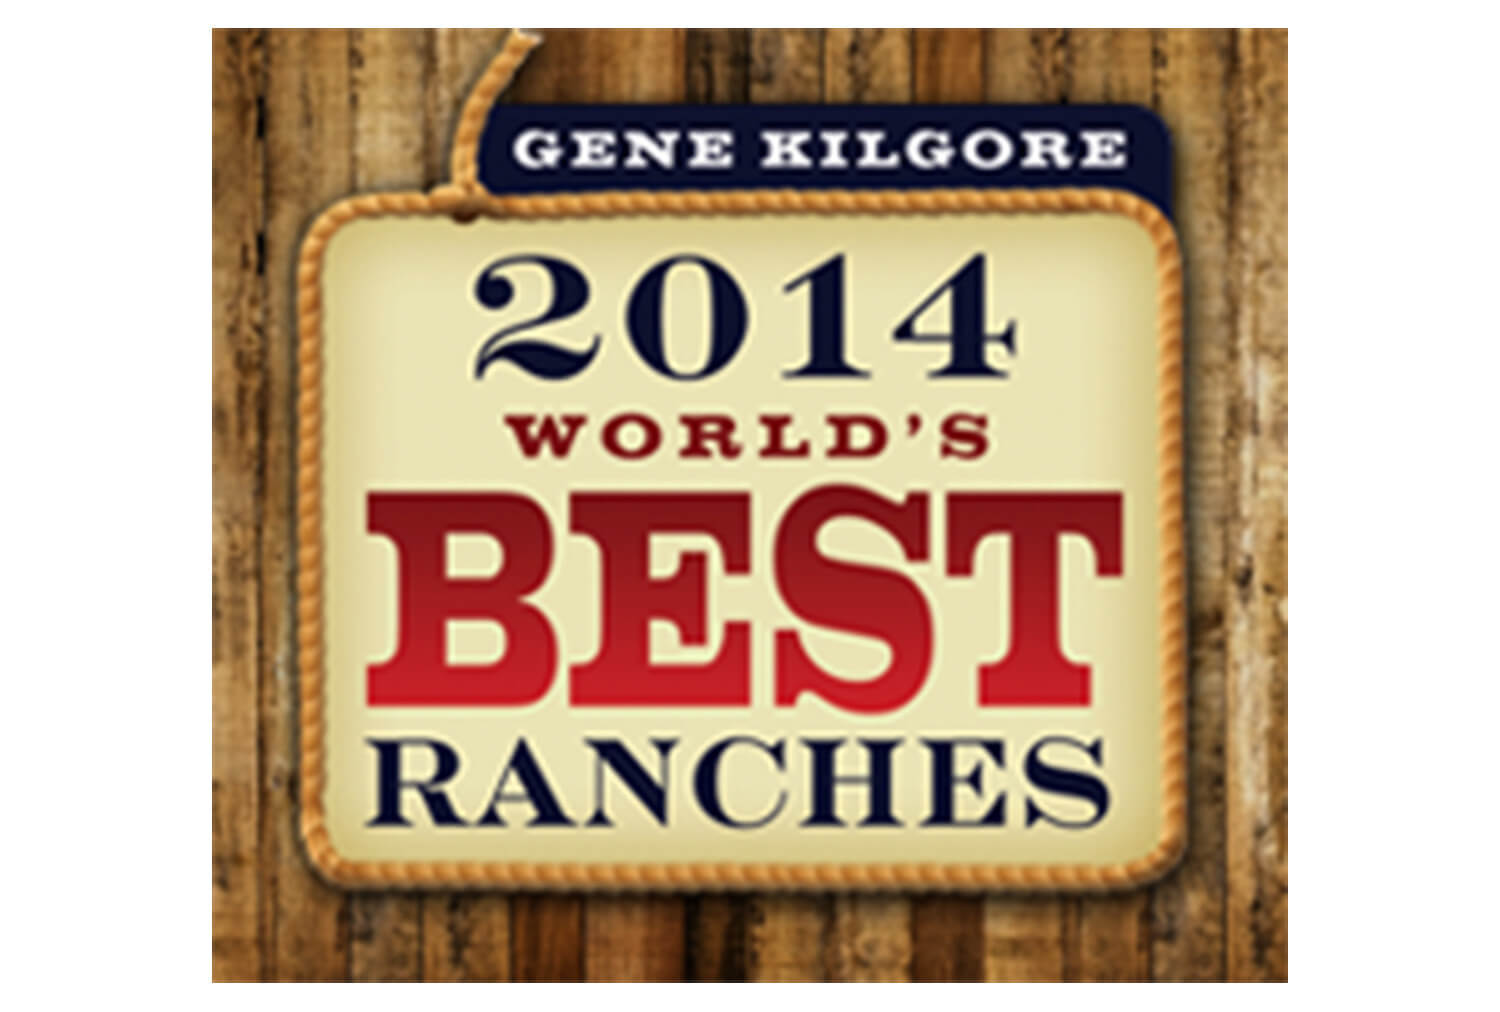 2014 World's Best Ranches, RanchWeb.com | Westgate Resorts